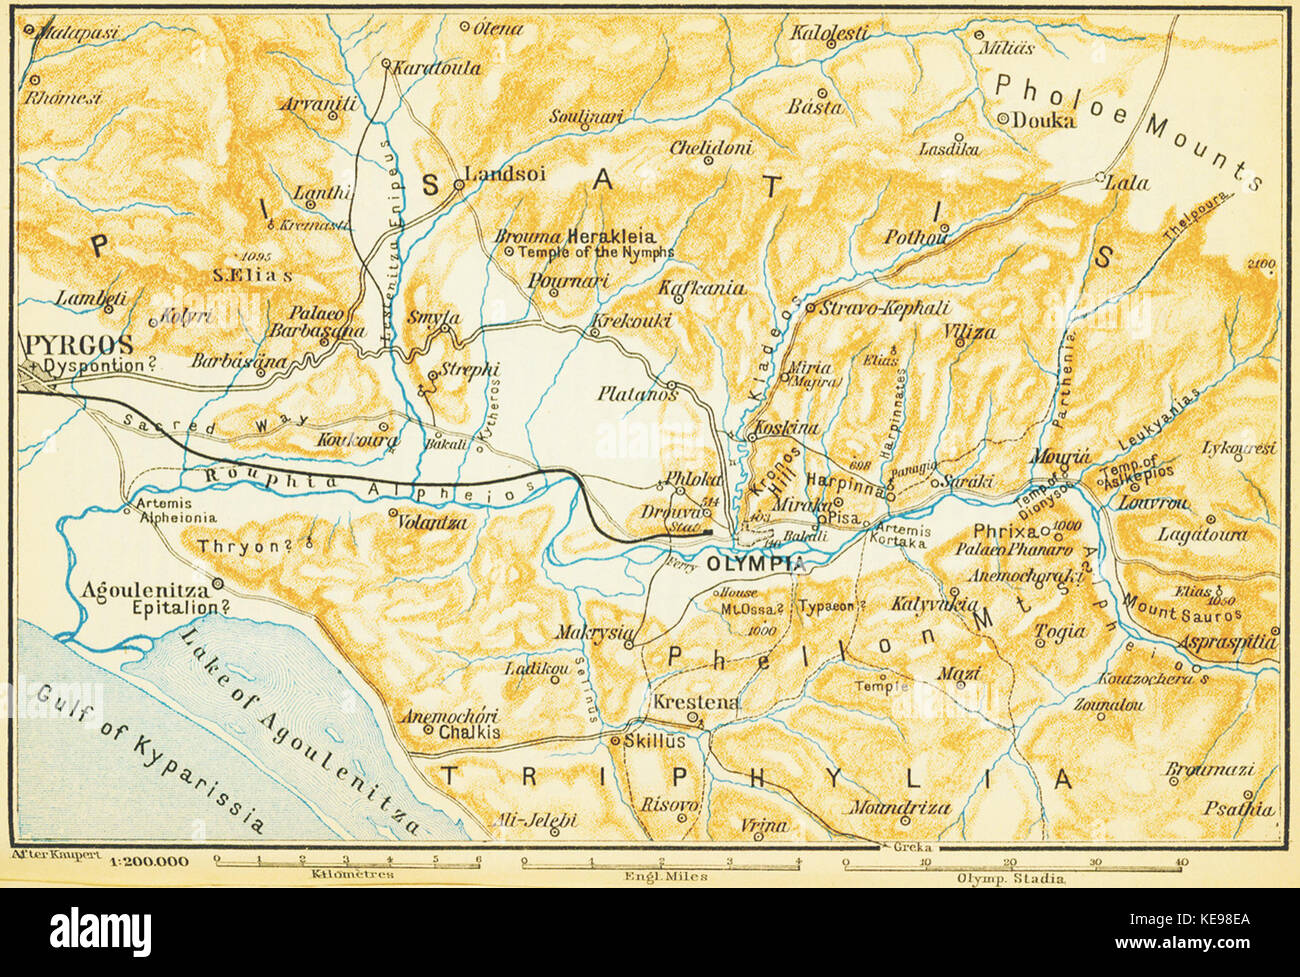 Map Of Olympia High Resolution Stock Photography and Images - Alamy